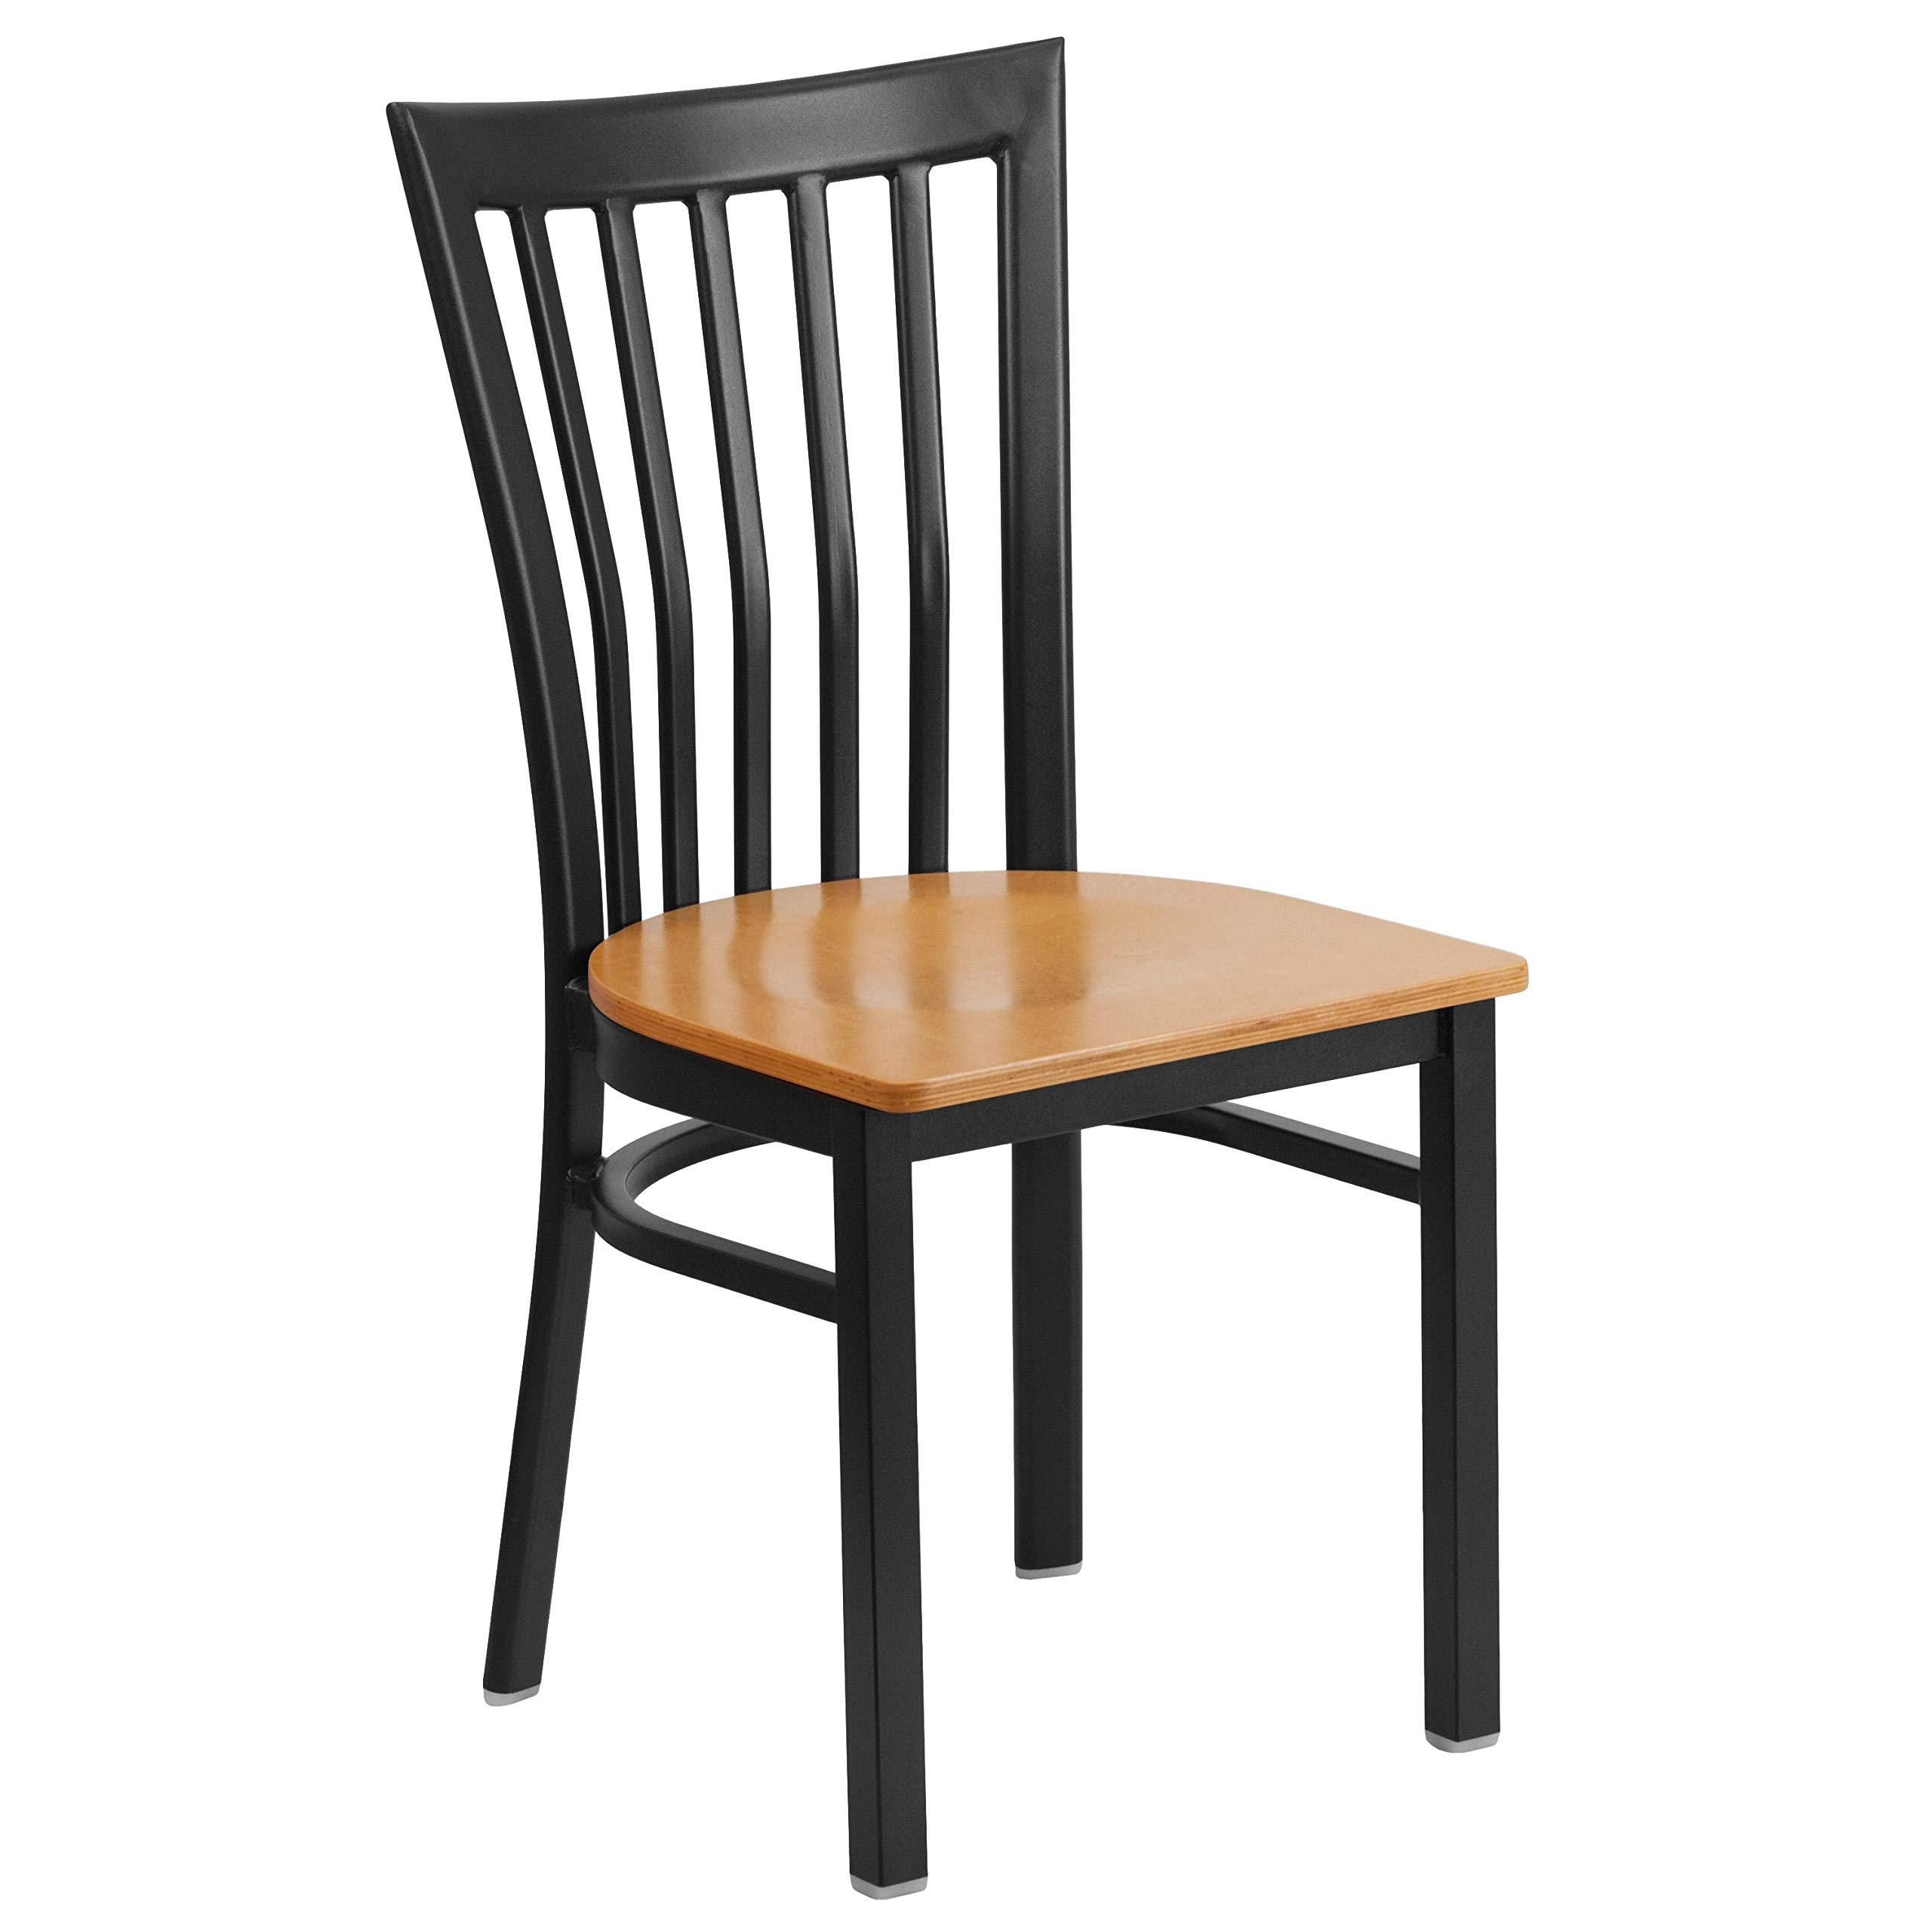 MFO Princeton Collection Black School House Back Metal Restaurant Chair - Natural Wood Seat by My Friendly Office